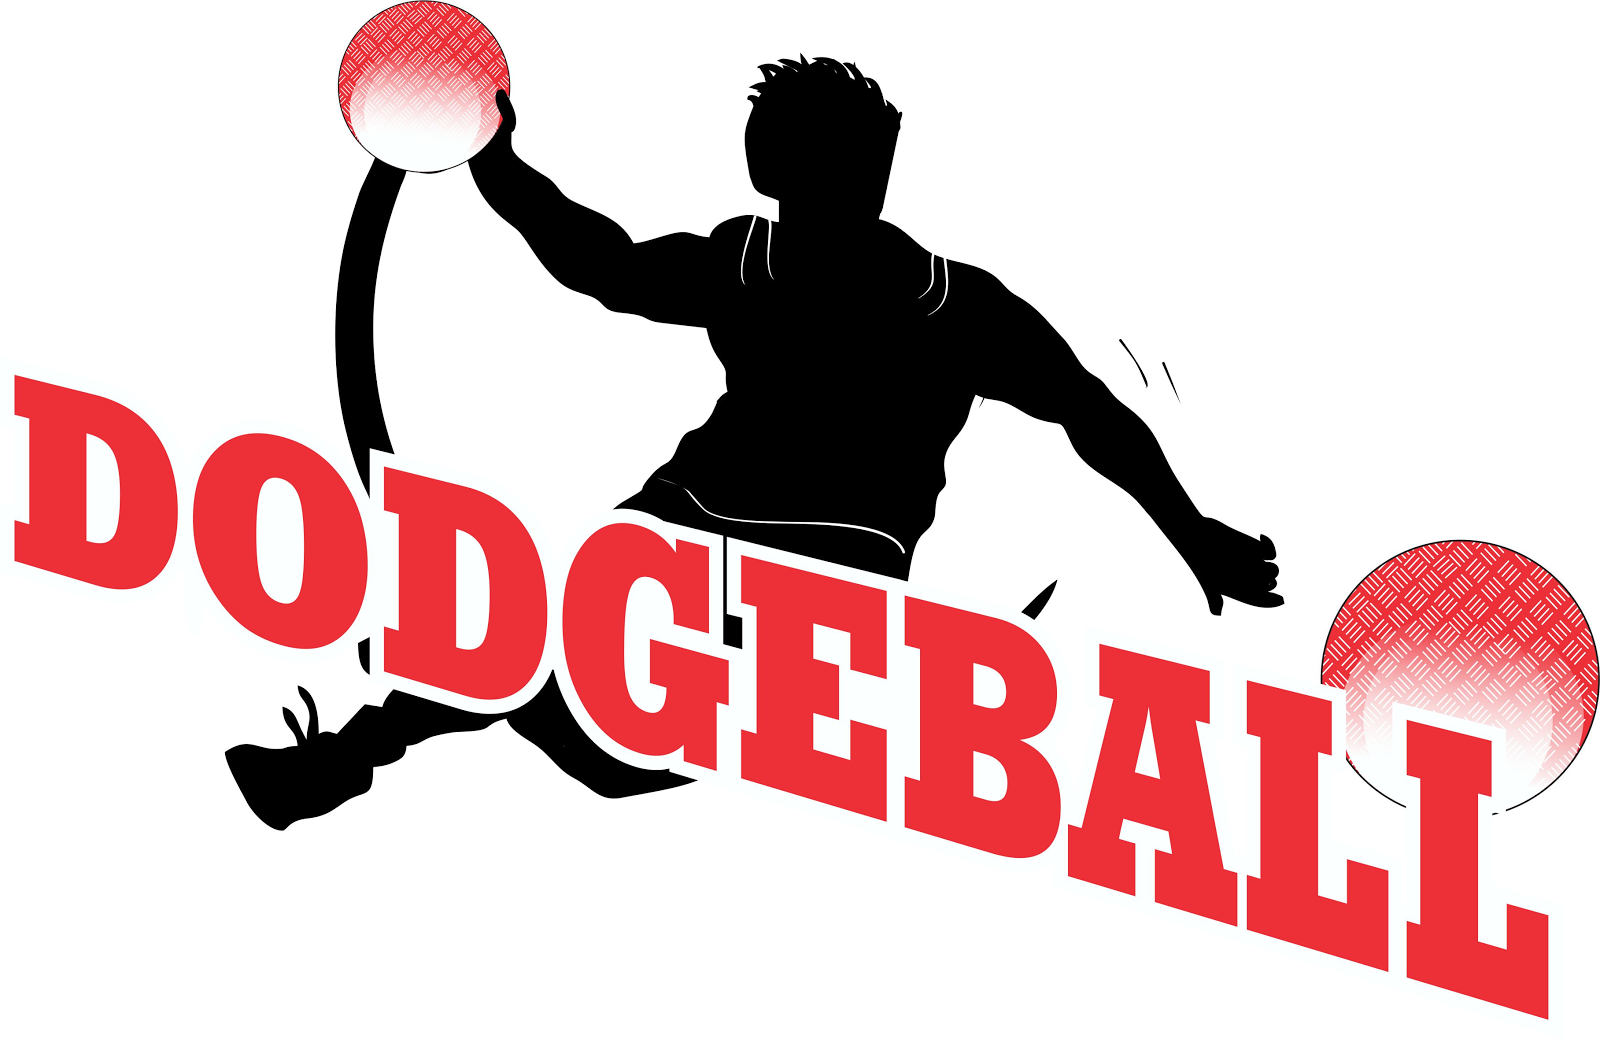 Dodge clipart team game Not To Gopher Blog To